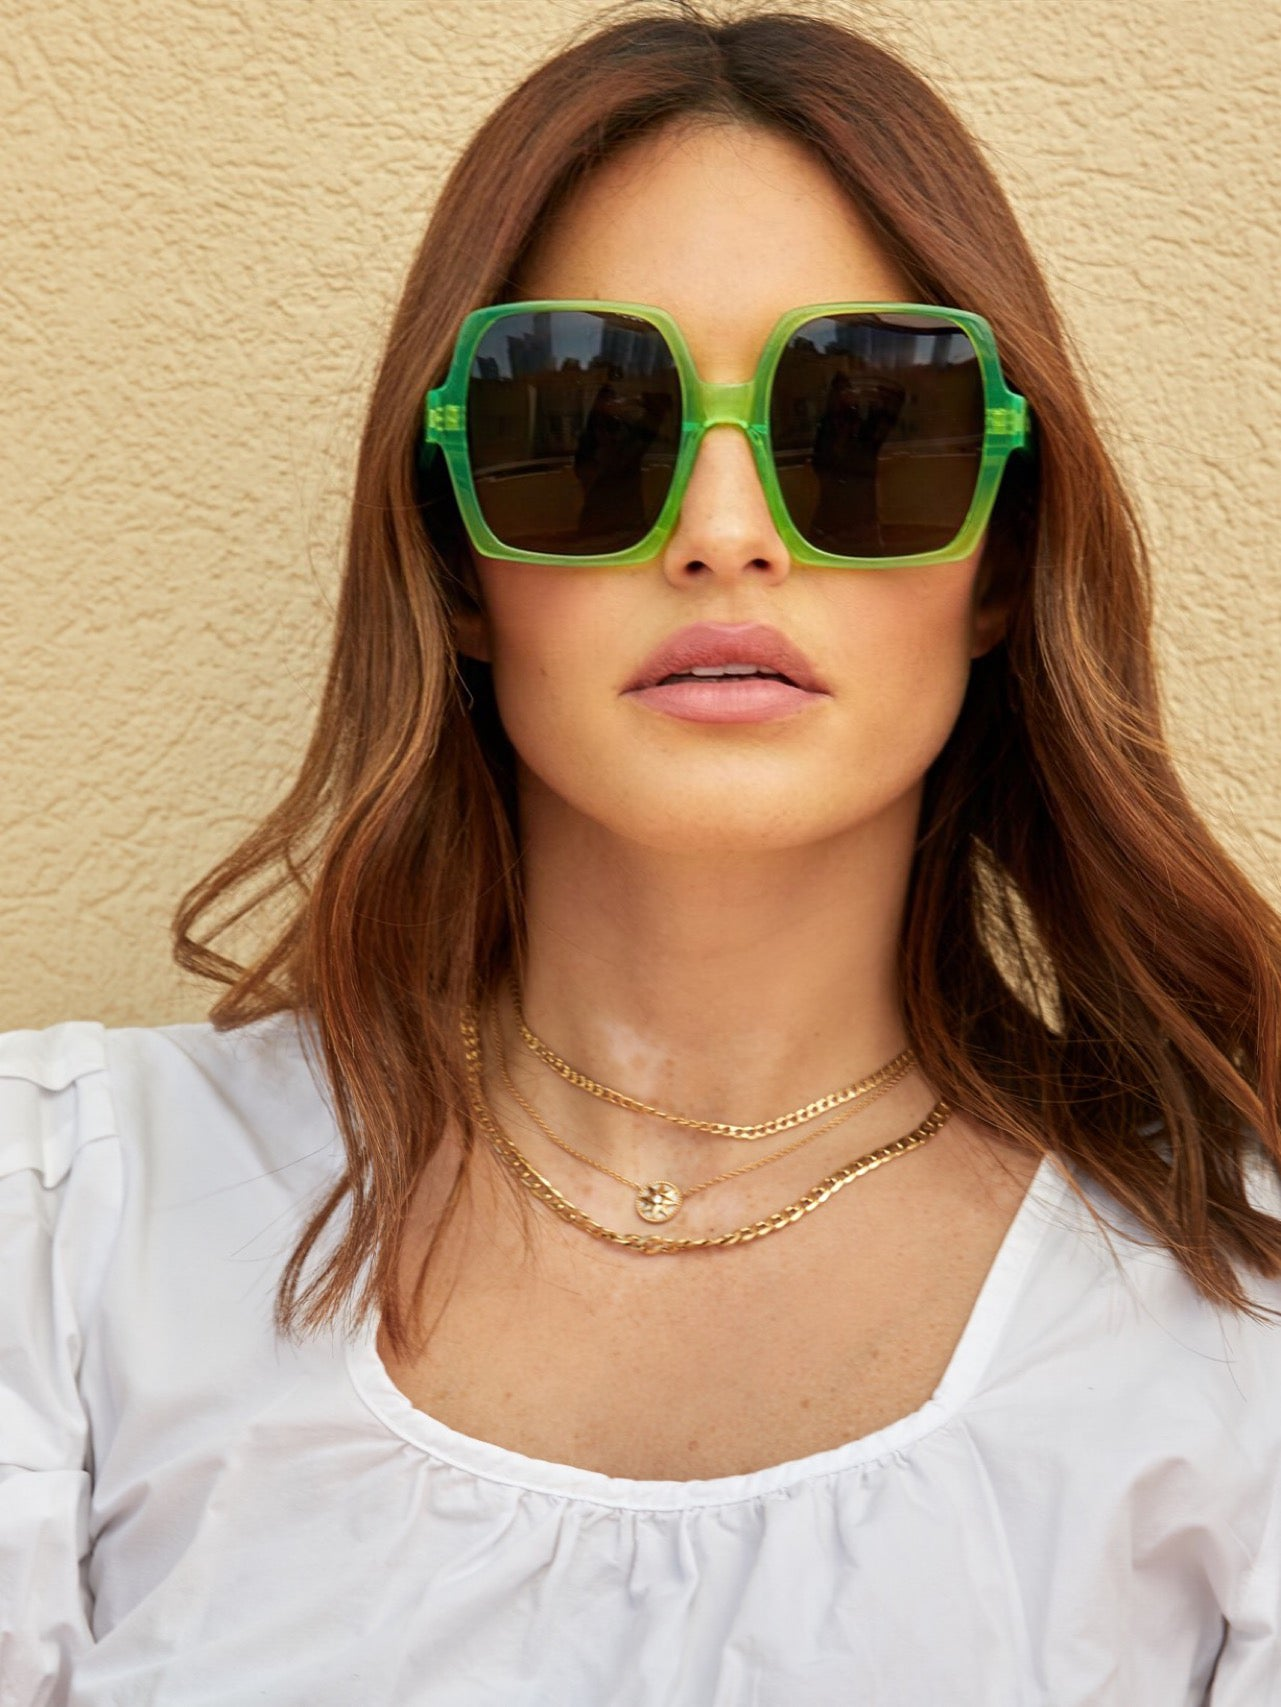 Square sunglasses with black lenses and neon green frames | Acetate | Kaia | Women's sunglasses | Karen Wazen Eyewear